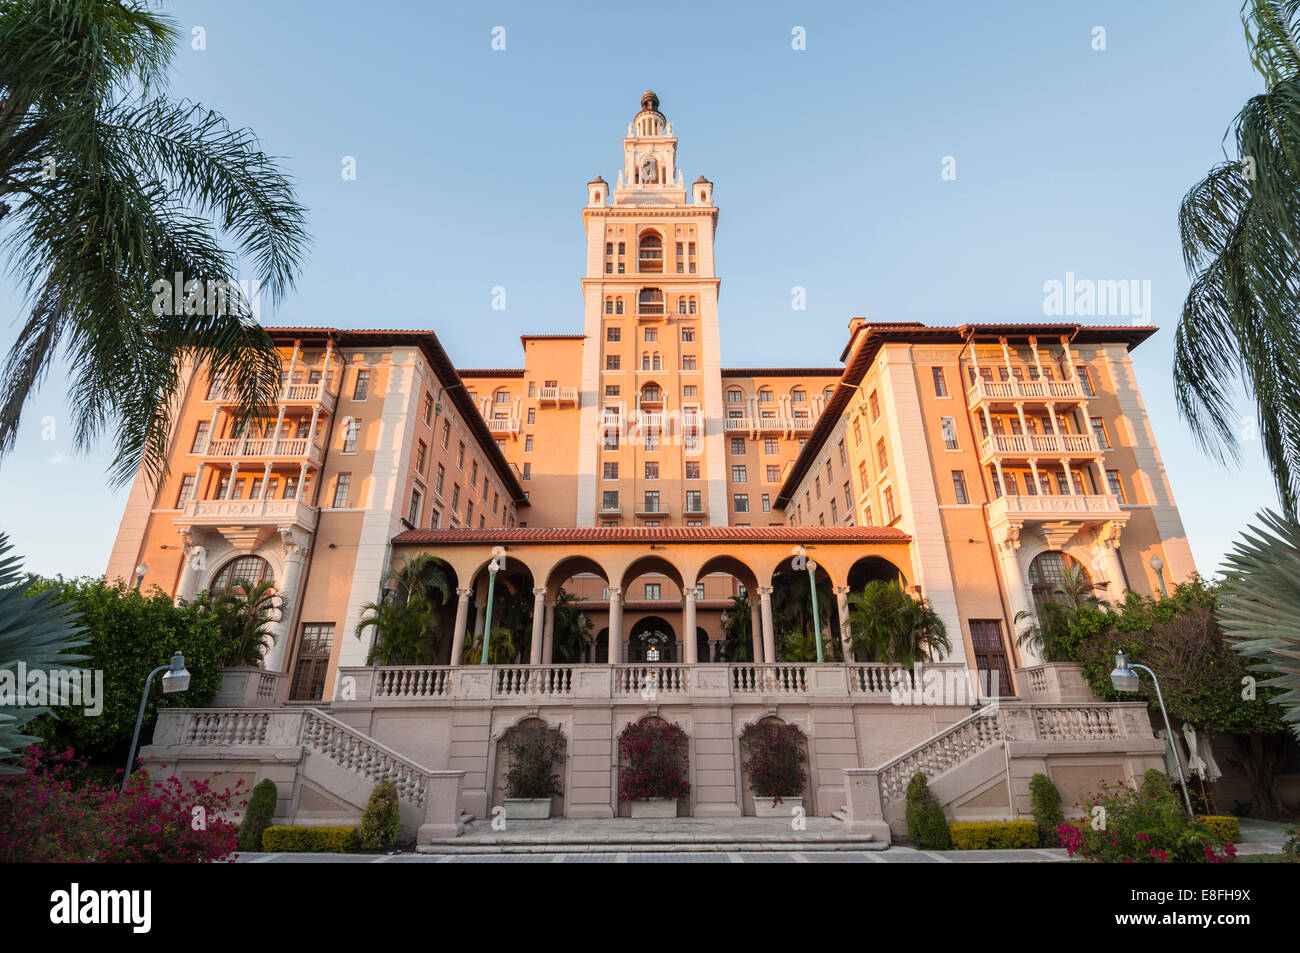 The historic and luxurious Biltmore Hotel which was built in 1925 located in Coral Gables, - Stock Image